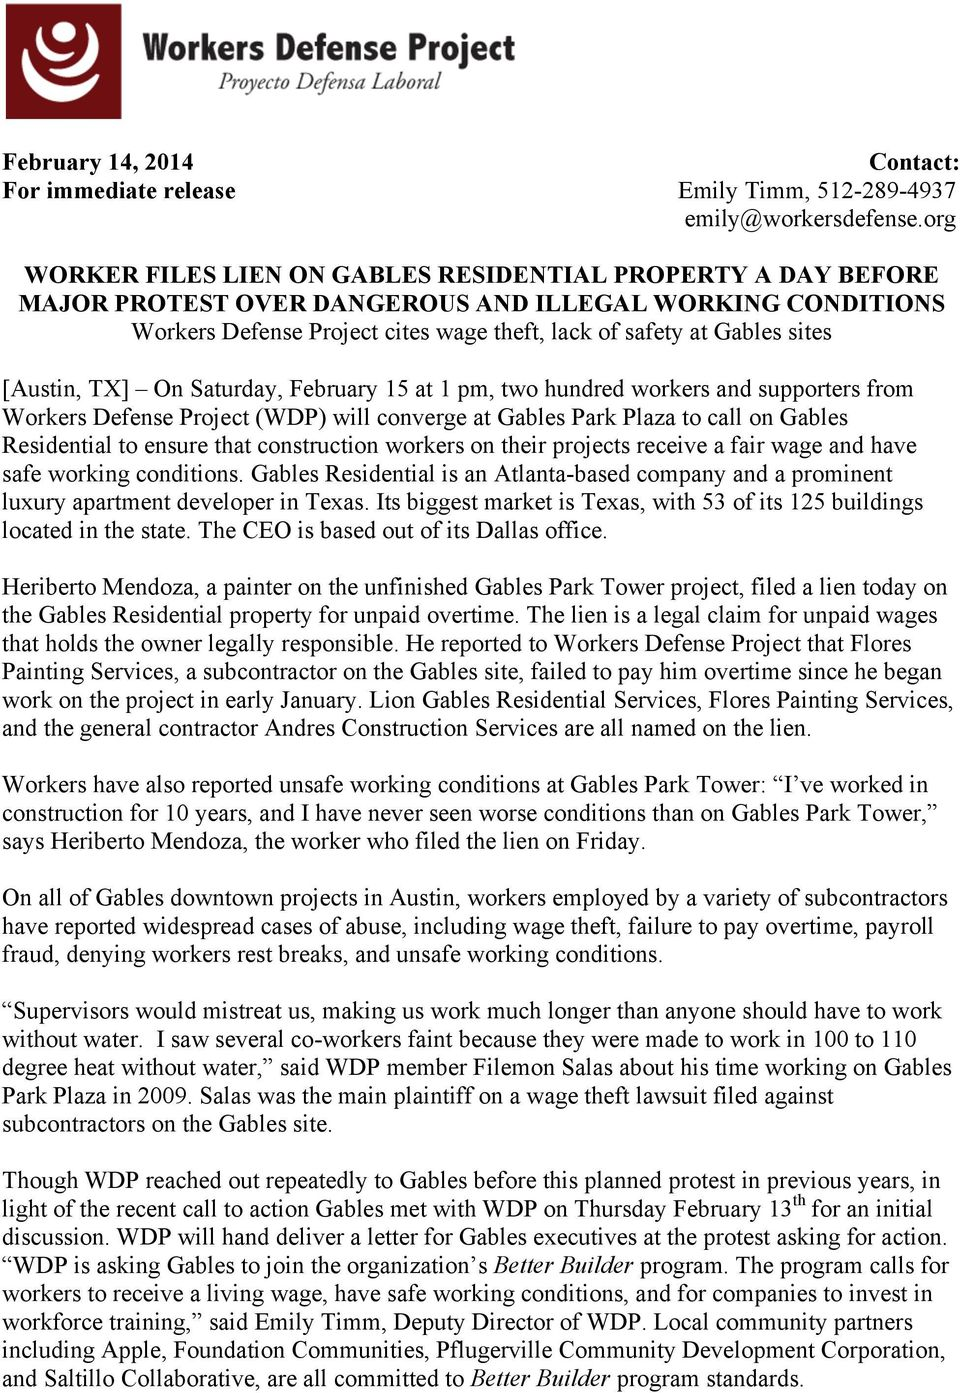 [Austin, TX] On Saturday, February 15 at 1 pm, two hundred workers and supporters from Workers Defense Project (WDP) will converge at Gables Park Plaza to call on Gables Residential to ensure that